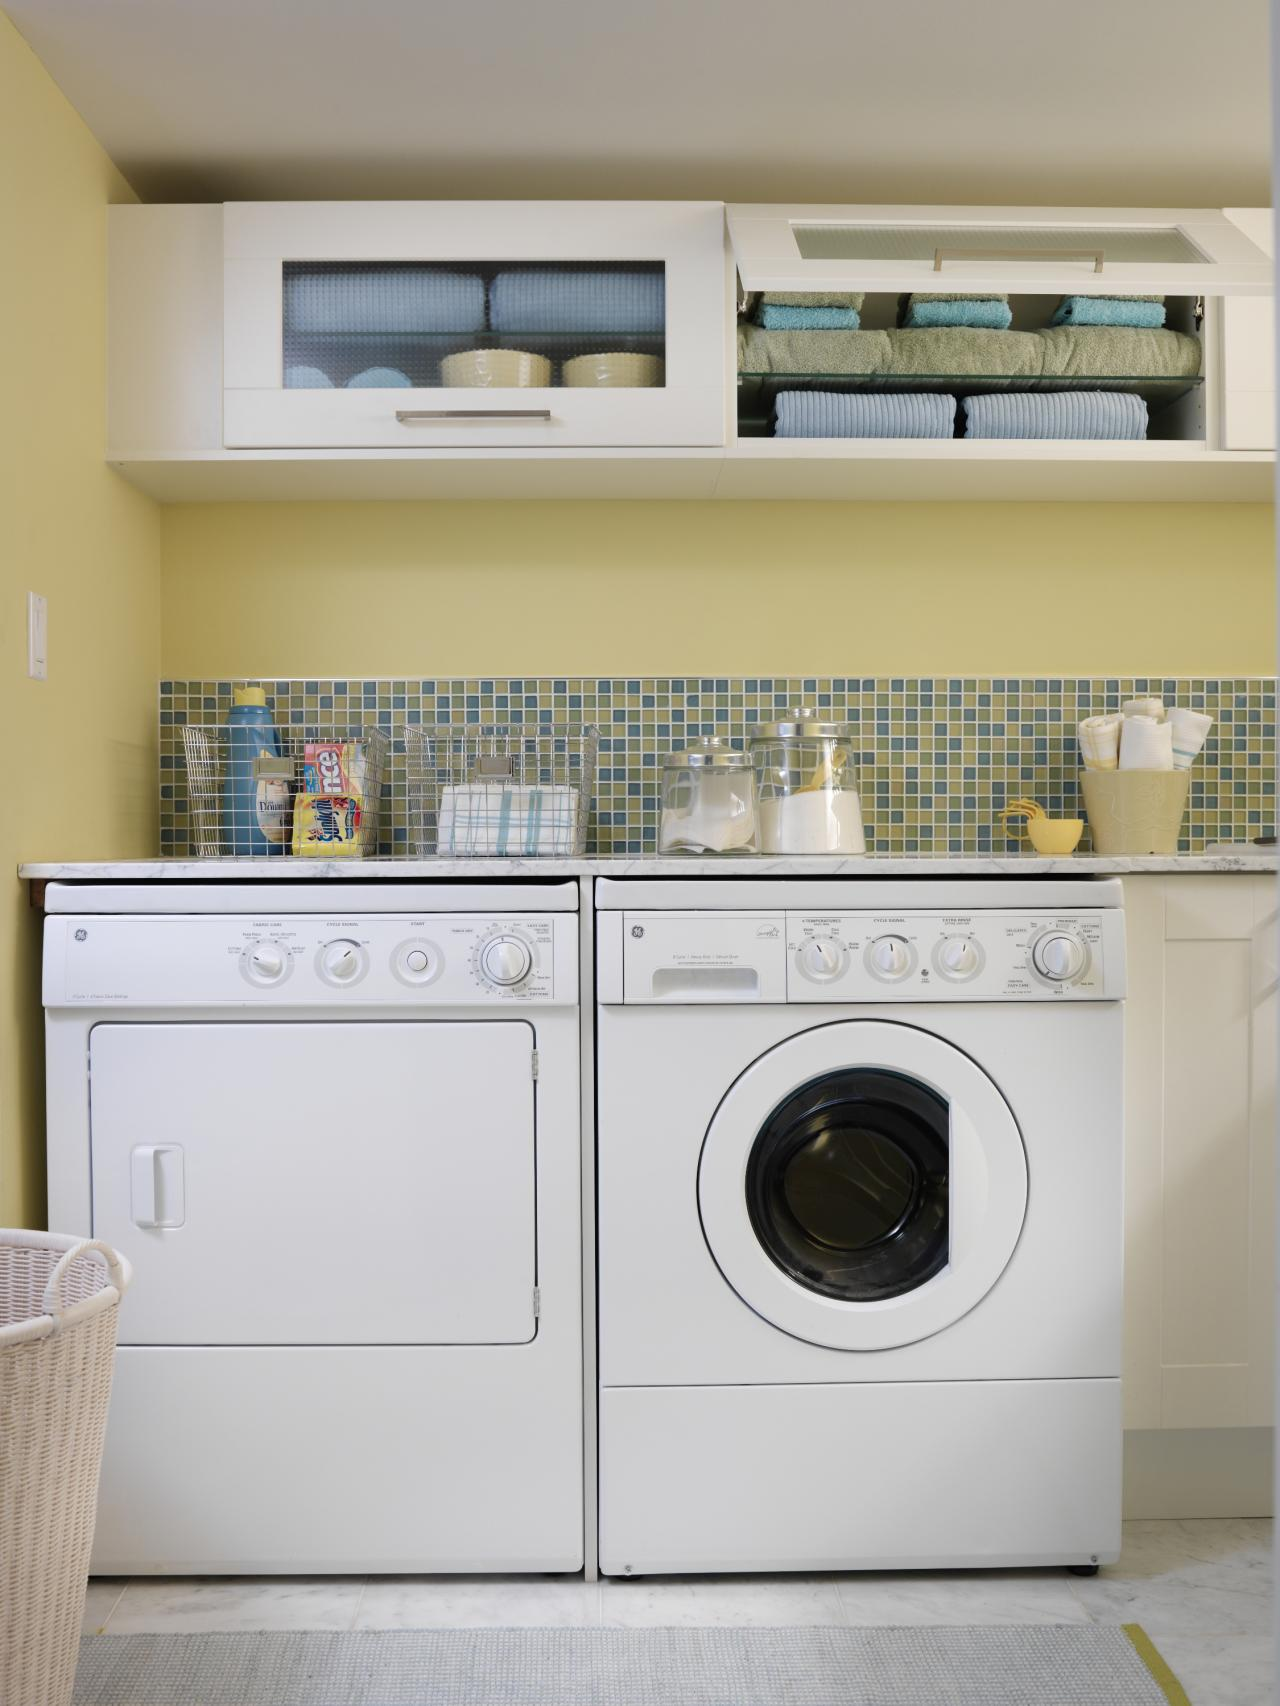 10 Clever Storage Ideas for Your Tiny Laundry Room | HGTV ... on Laundry Room Organization Ideas  id=32702